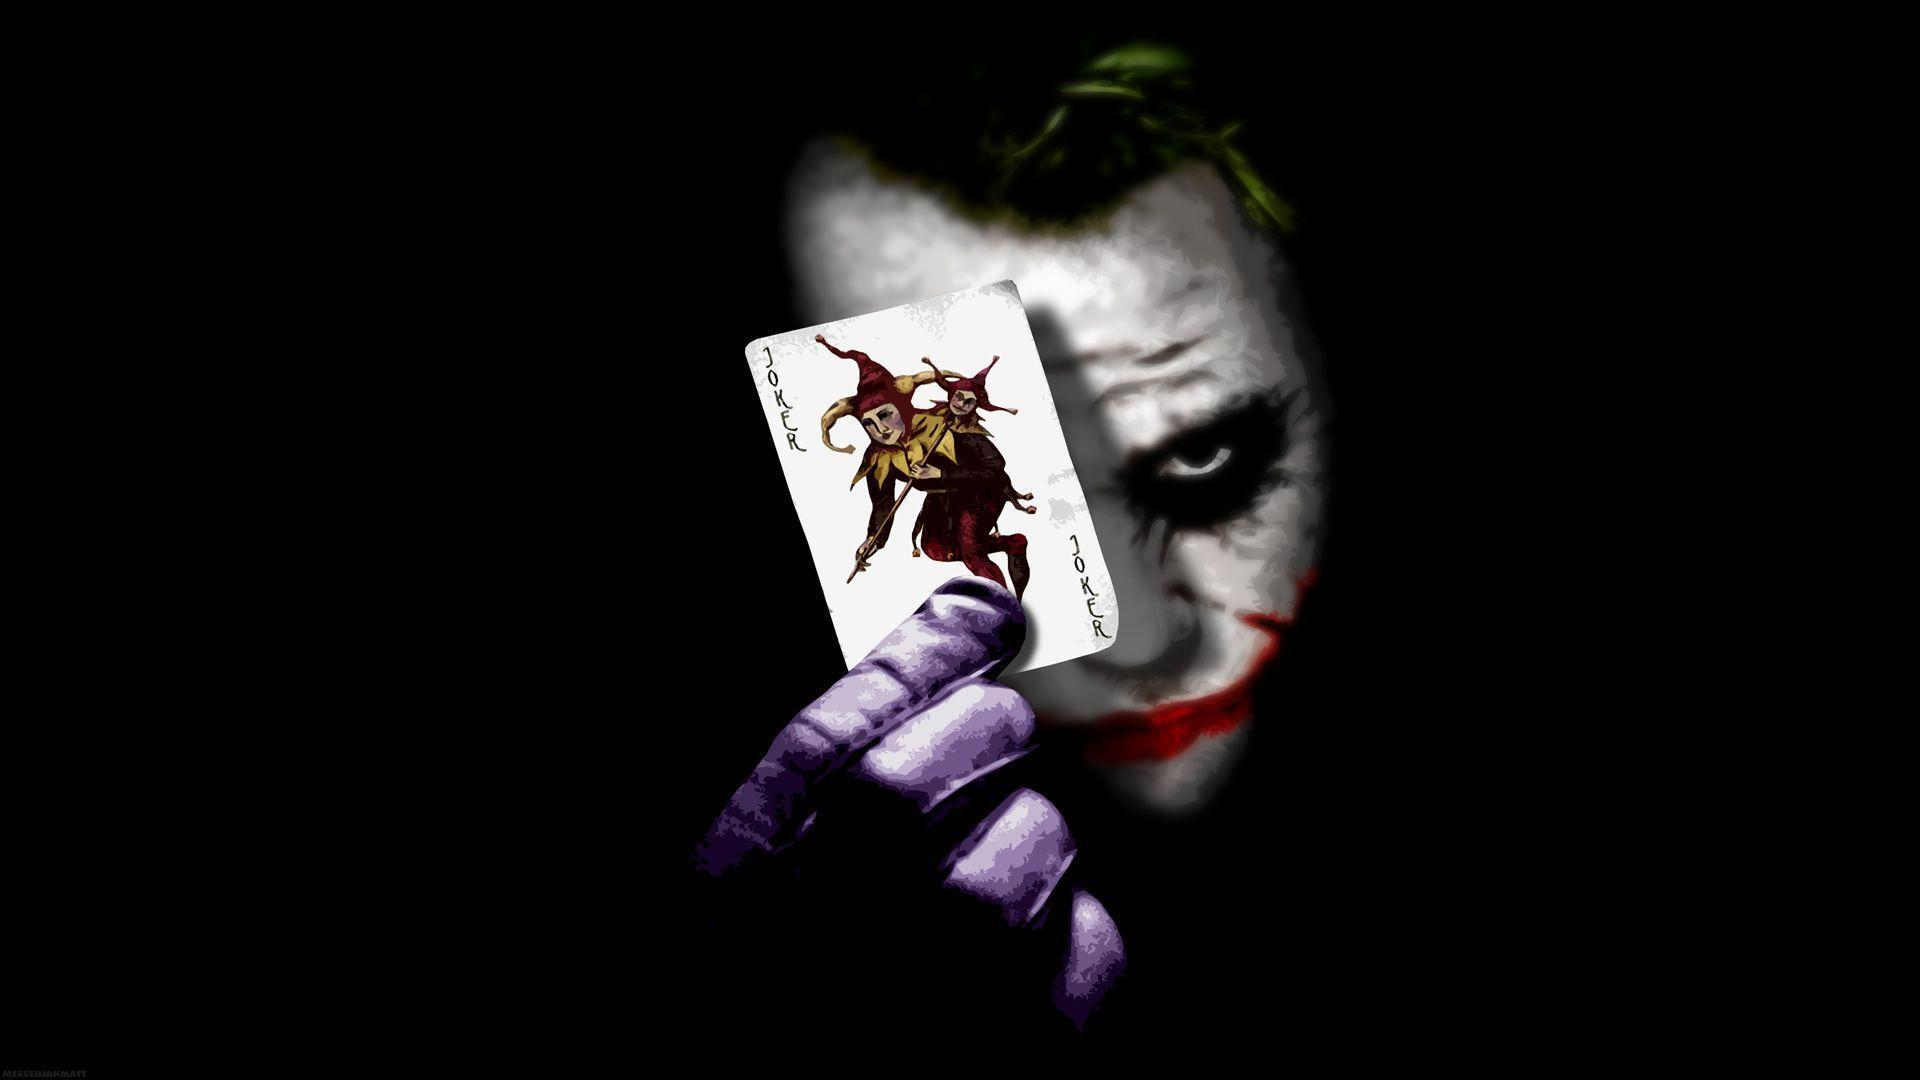 Joker HD Wallpapers 1920x1080